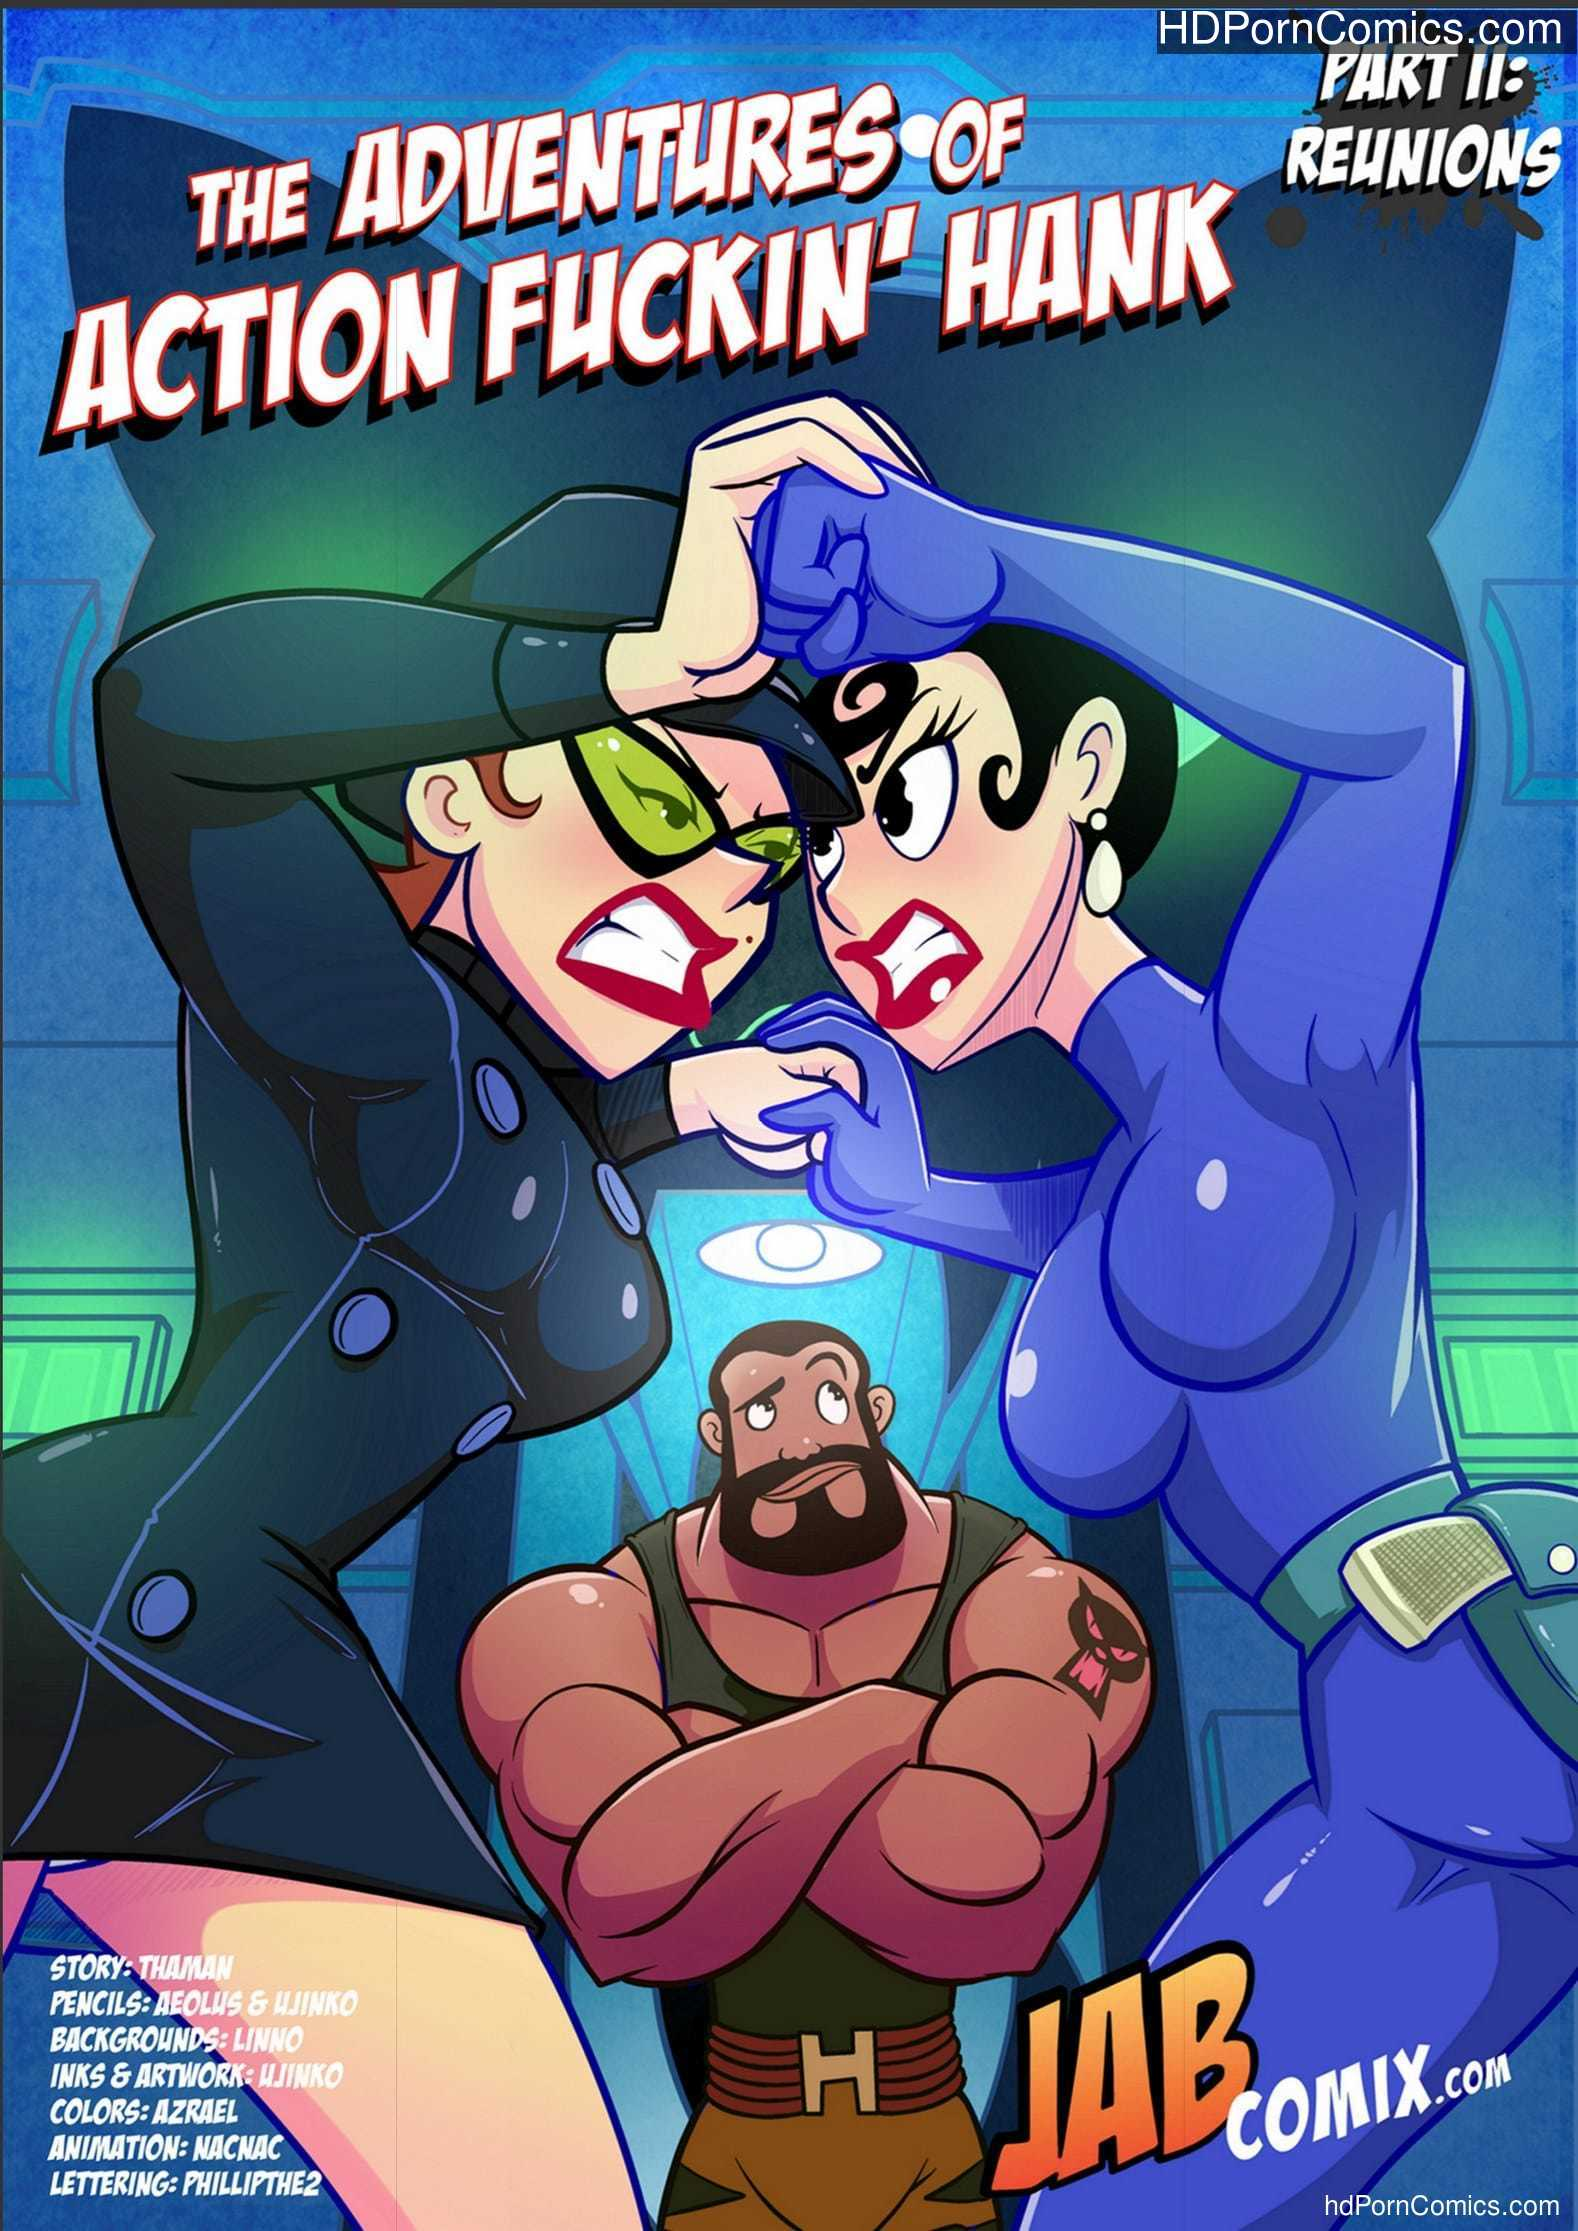 Jabcomix – Action Fuckin' Hank 2 Update free Cartoon Porn Comic